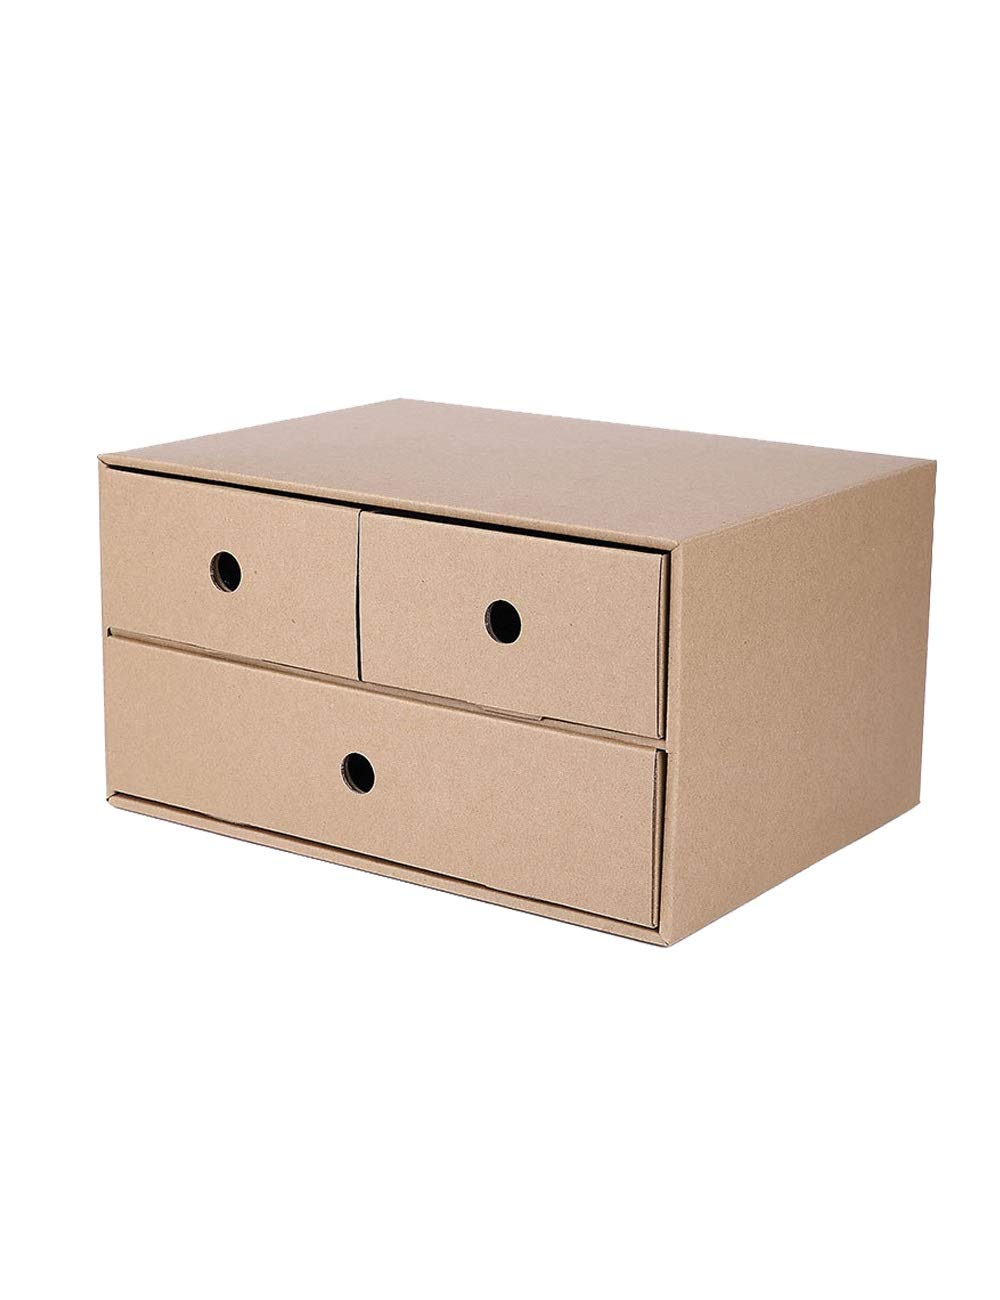 File Cabinets Office Desktop Drawer Type File Manager Stationery Cabinet 2 Layer A4 Paper Data Cabinet Storage Box Storage Home Office Furniture by File Cabinets